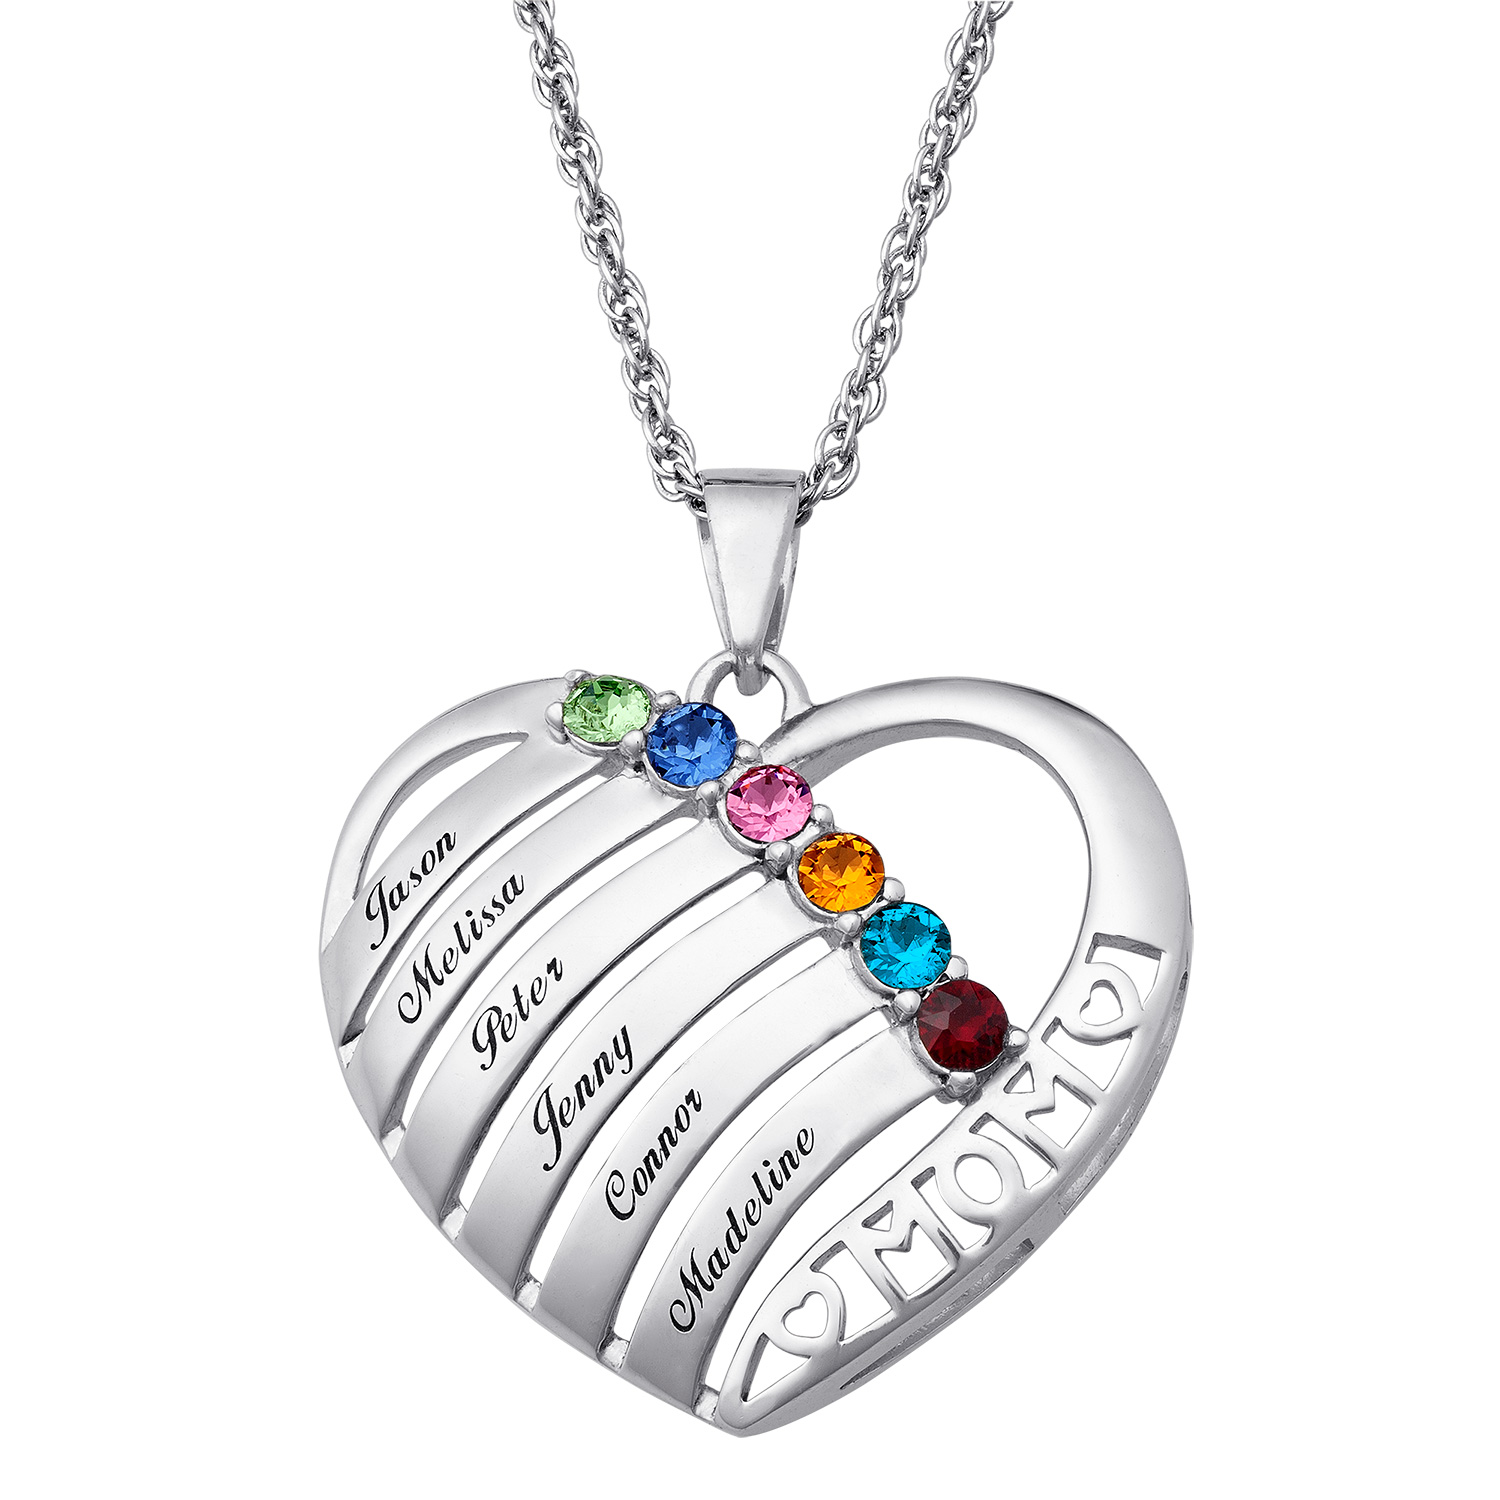 Engraved Heart Family Birthstone Necklace for Mom